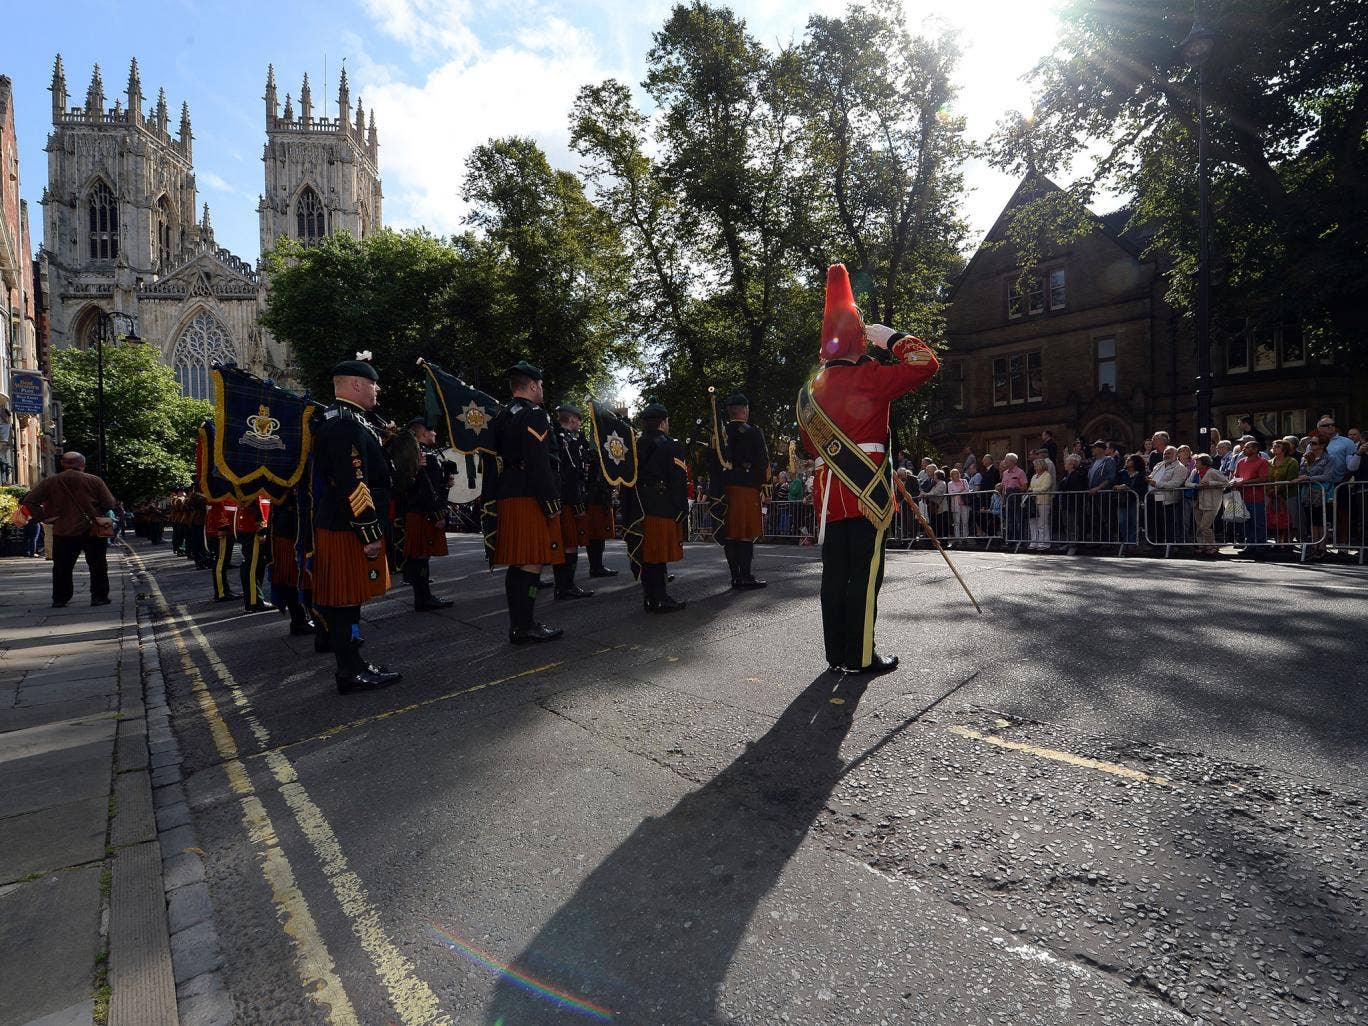 The Royal Dragoons Guard march past York Minster as they parade through the Cit ahead of a service in the Minster as part of the WWI Commemorations